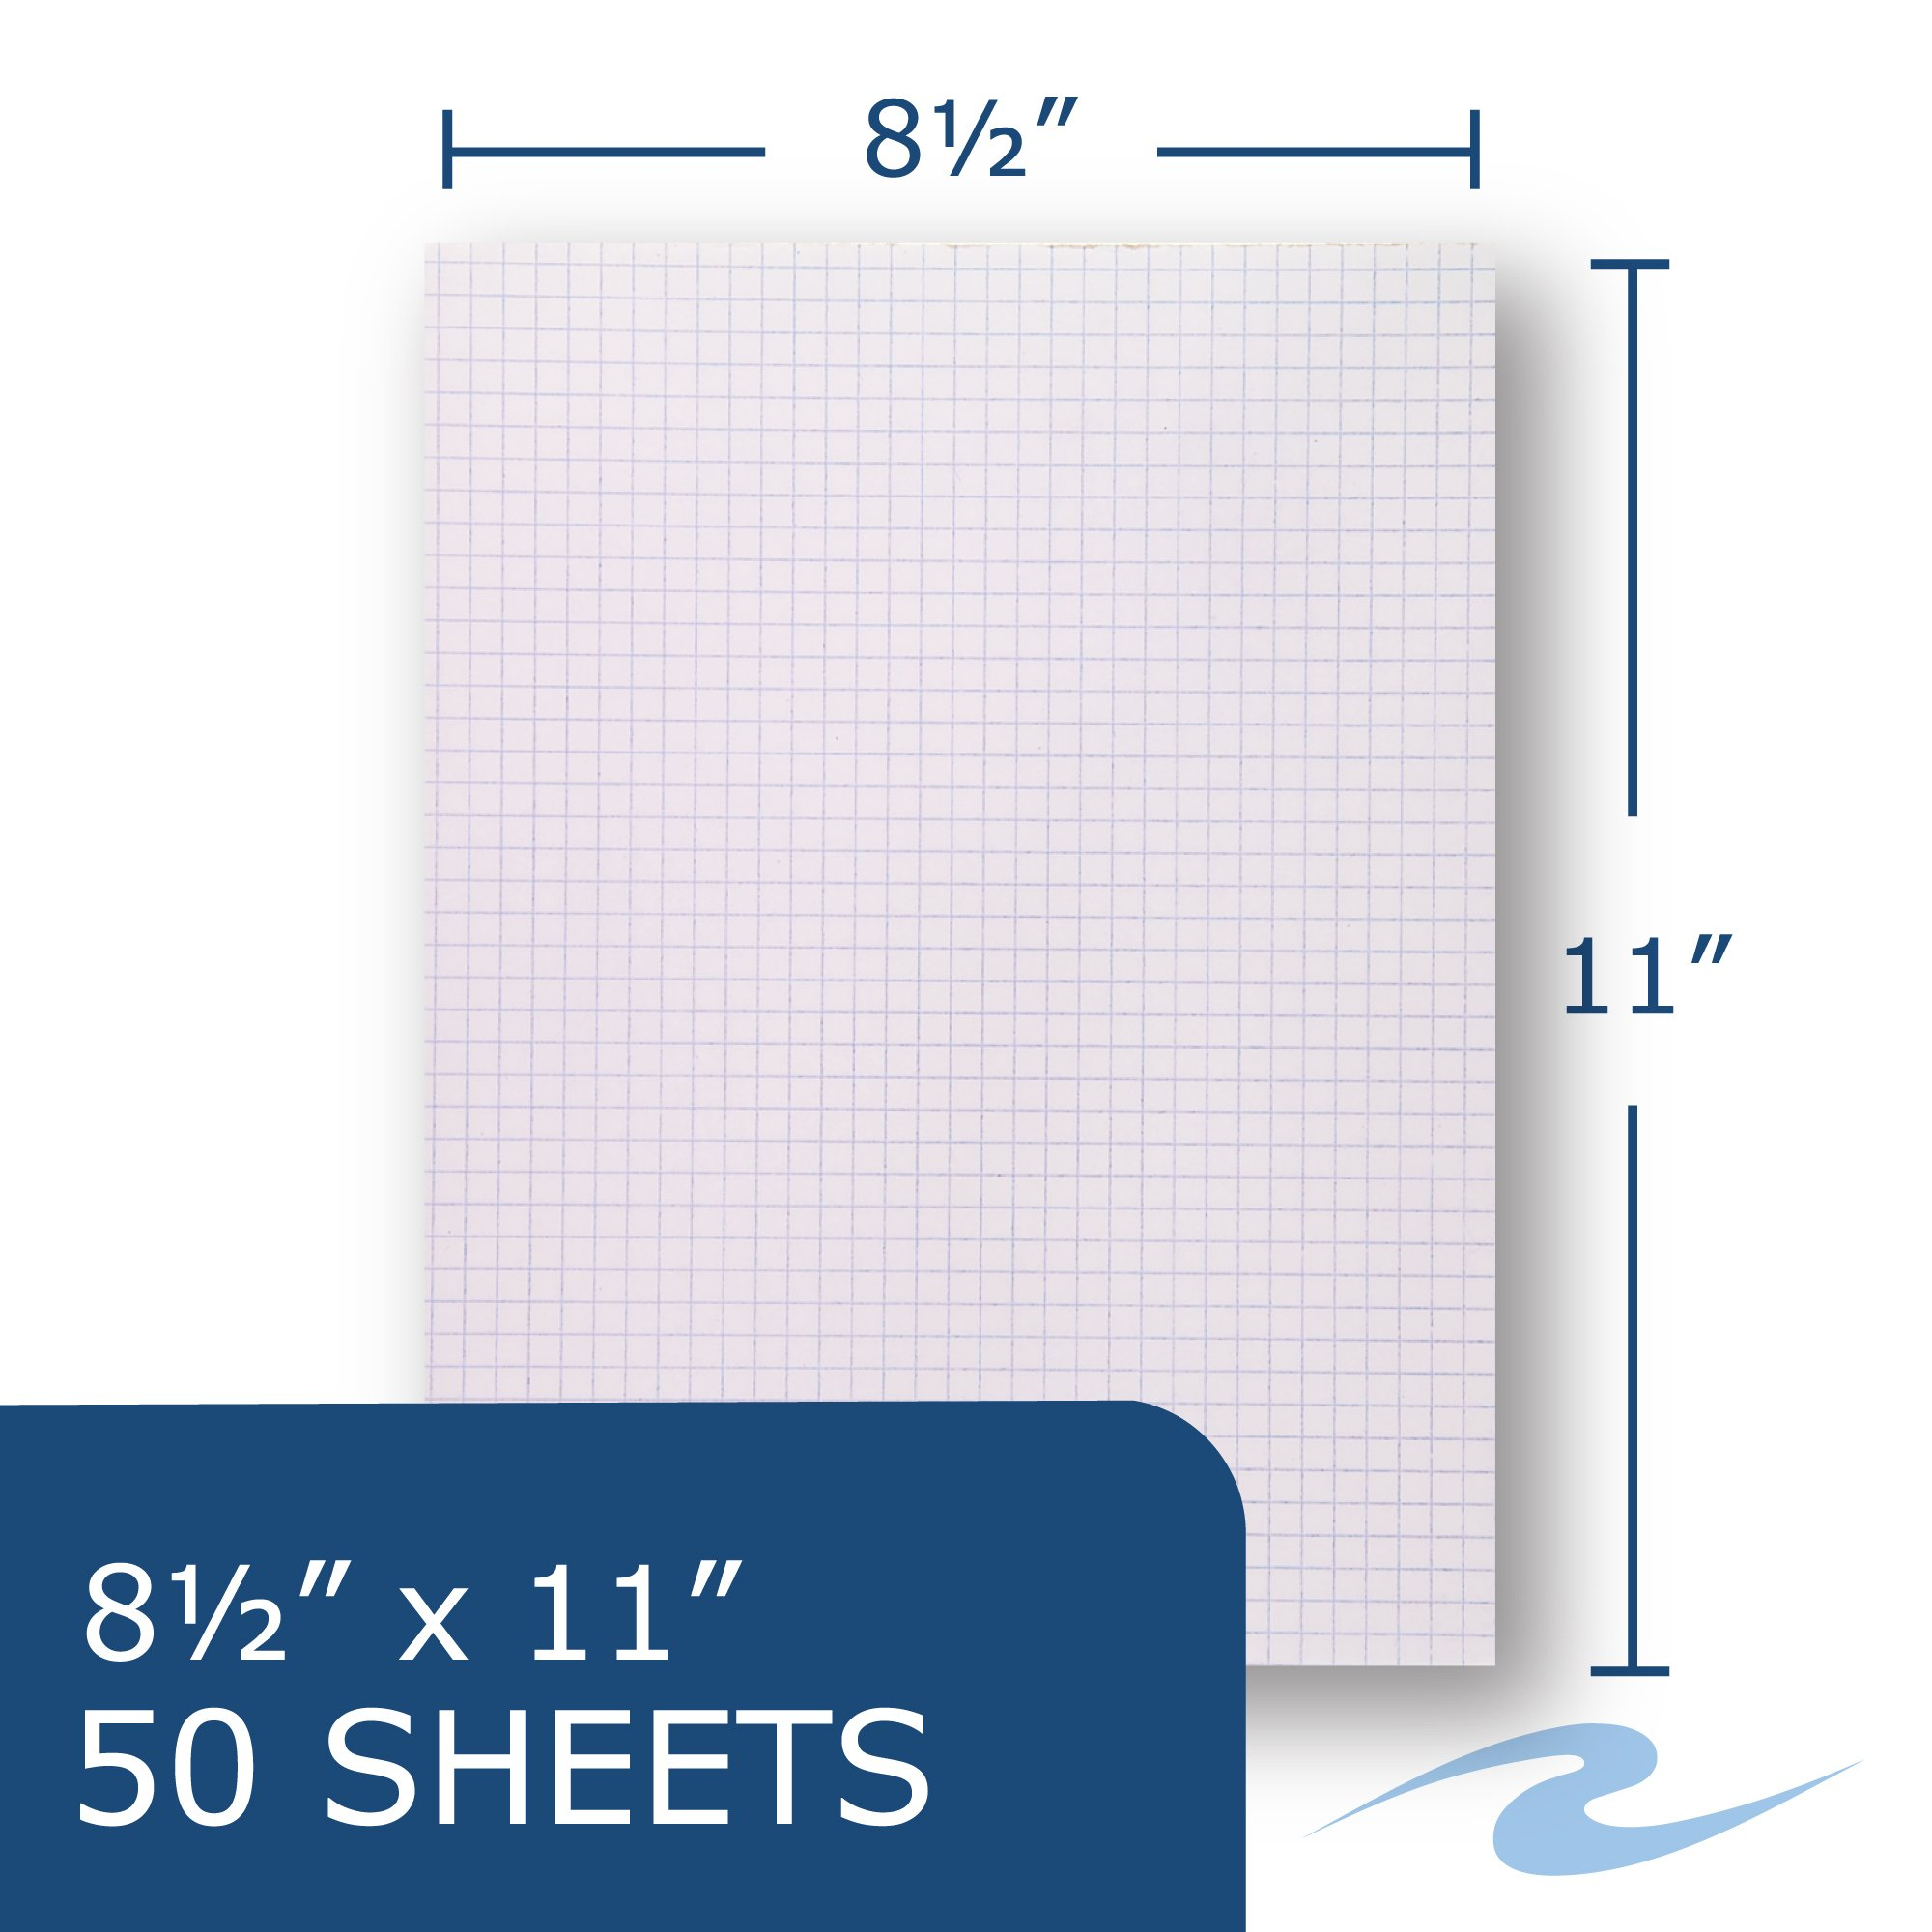 Case of 72 Gummed Pads, 8.5''x11'', 50 sheets 15# White Paper Per Pad, 12 Pads Per pack, 3-Hole Punched, glued, 4x4 graph Ruled by Roaring Spring (Image #3)